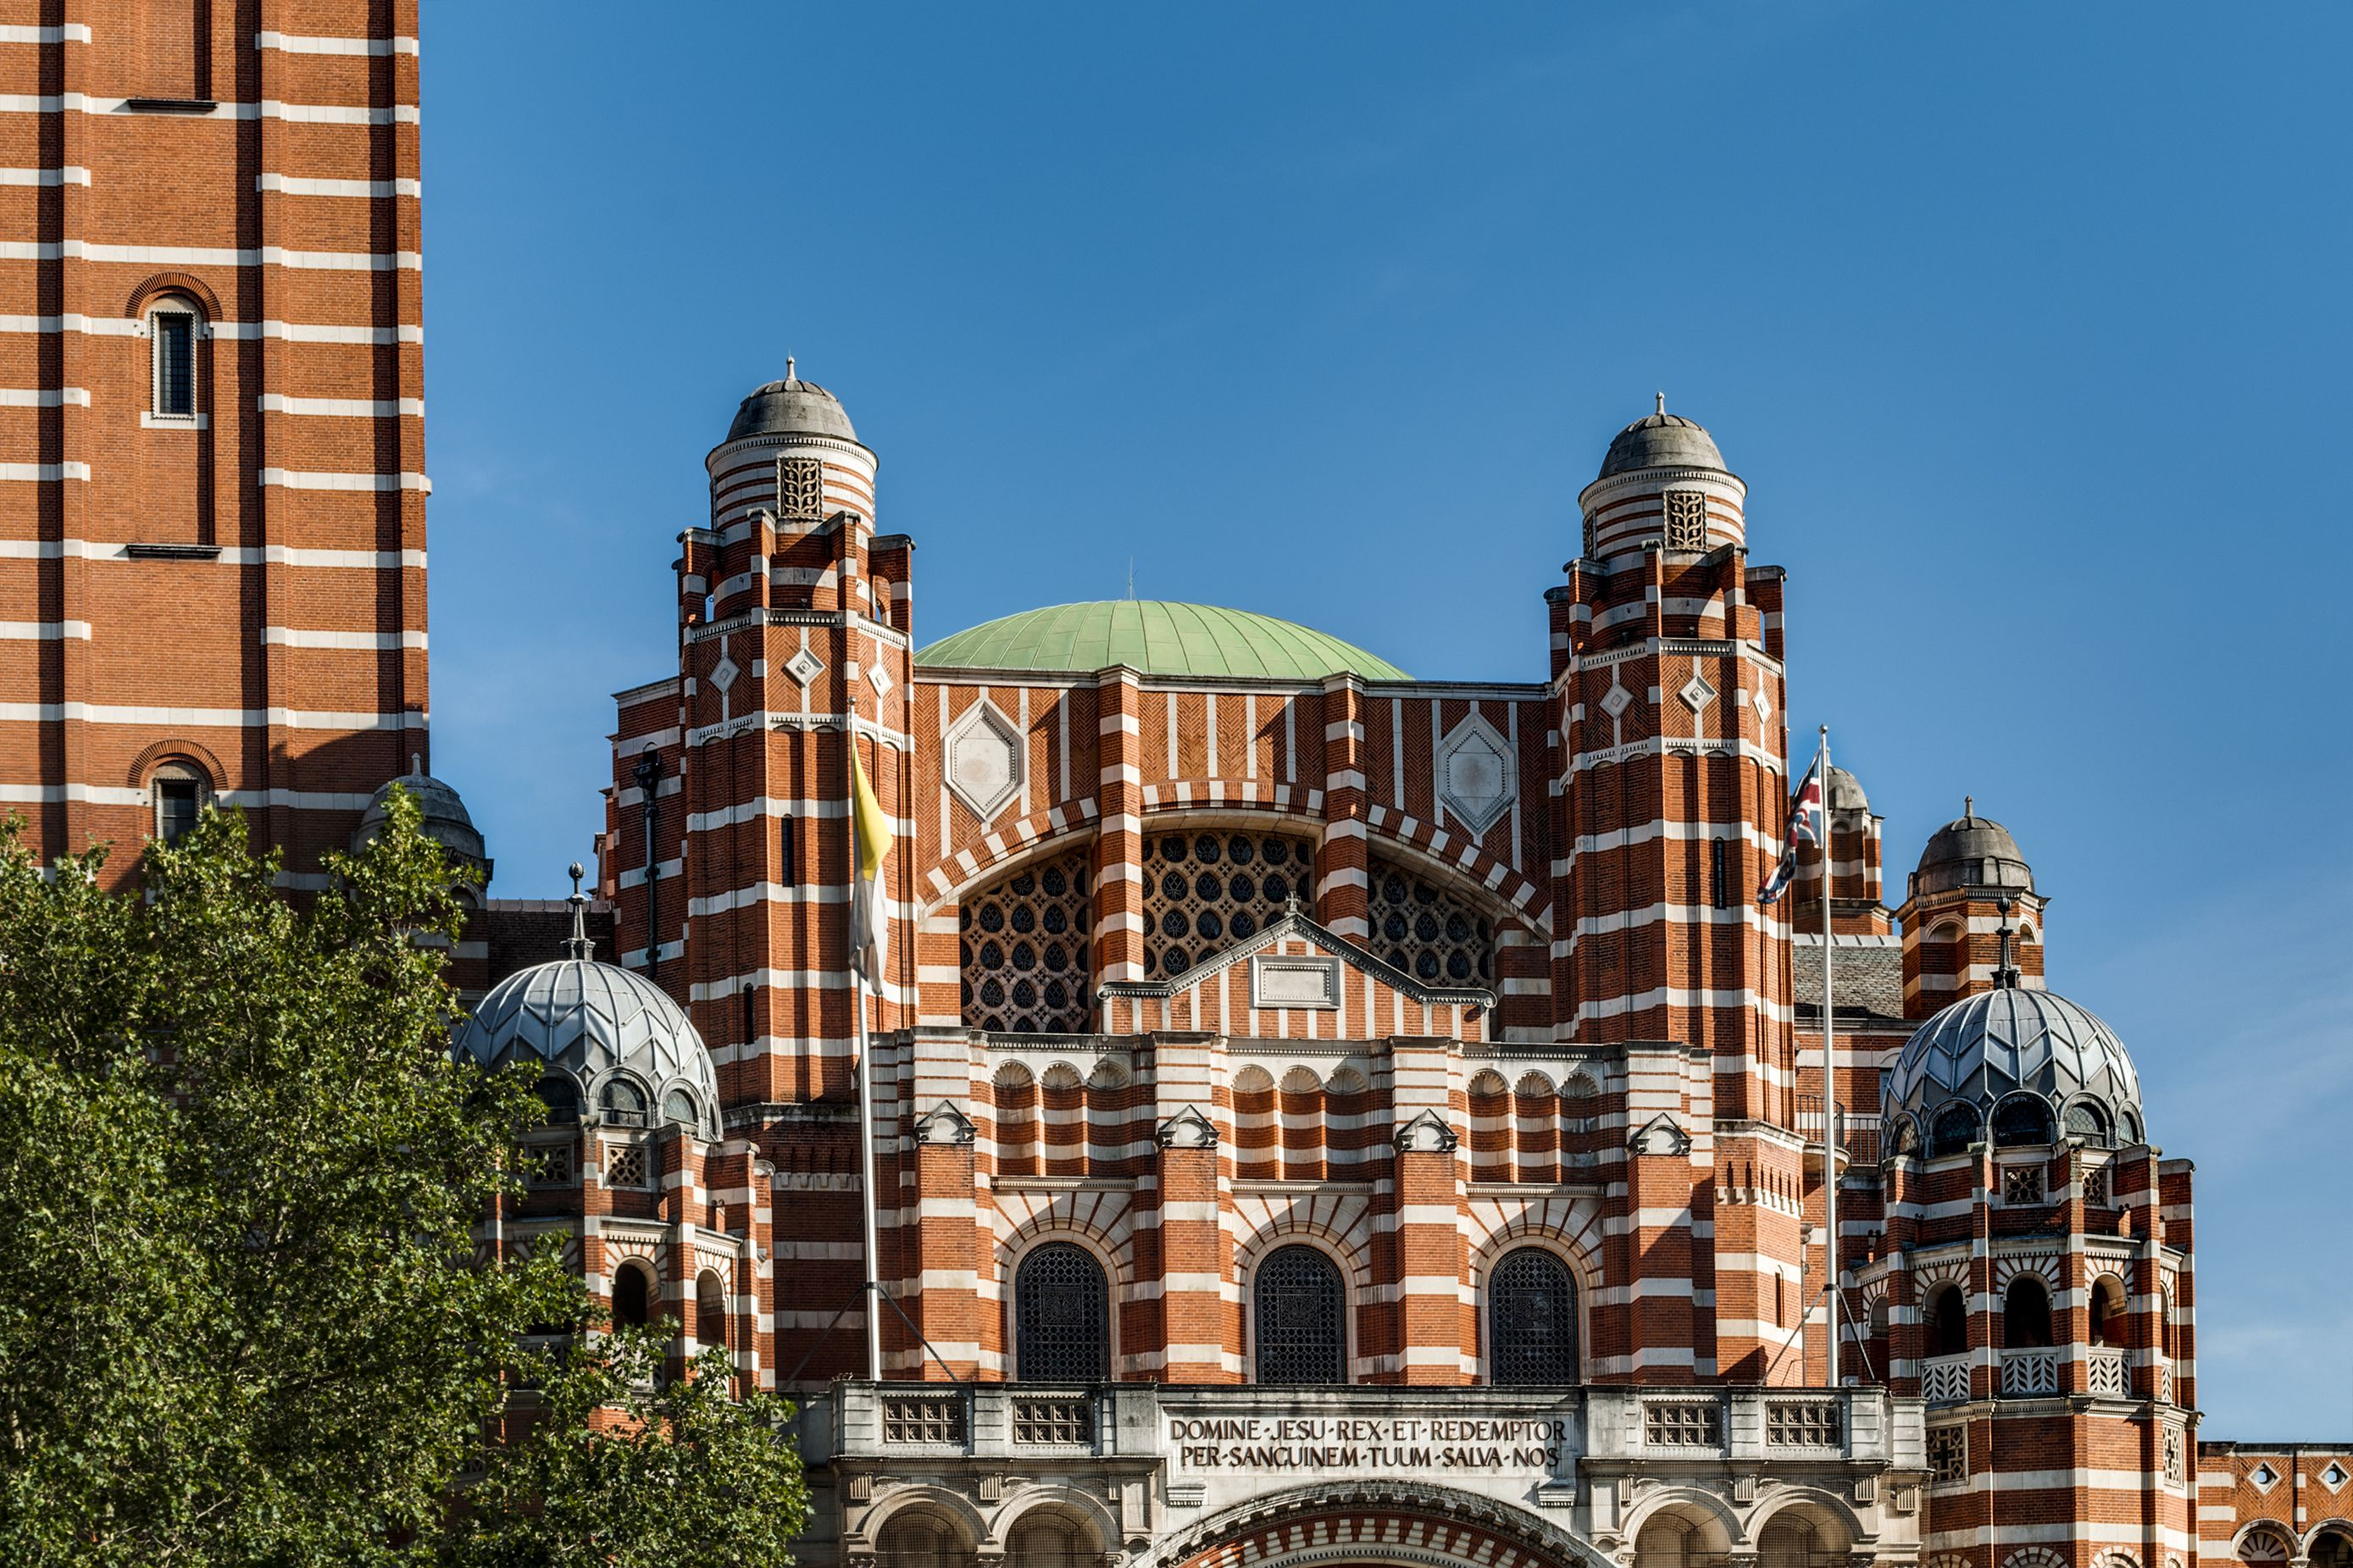 Catholic Church and London landmarks concept with Westminster Cathedral a neo Byzantine style cathedral in London, United Kingdom